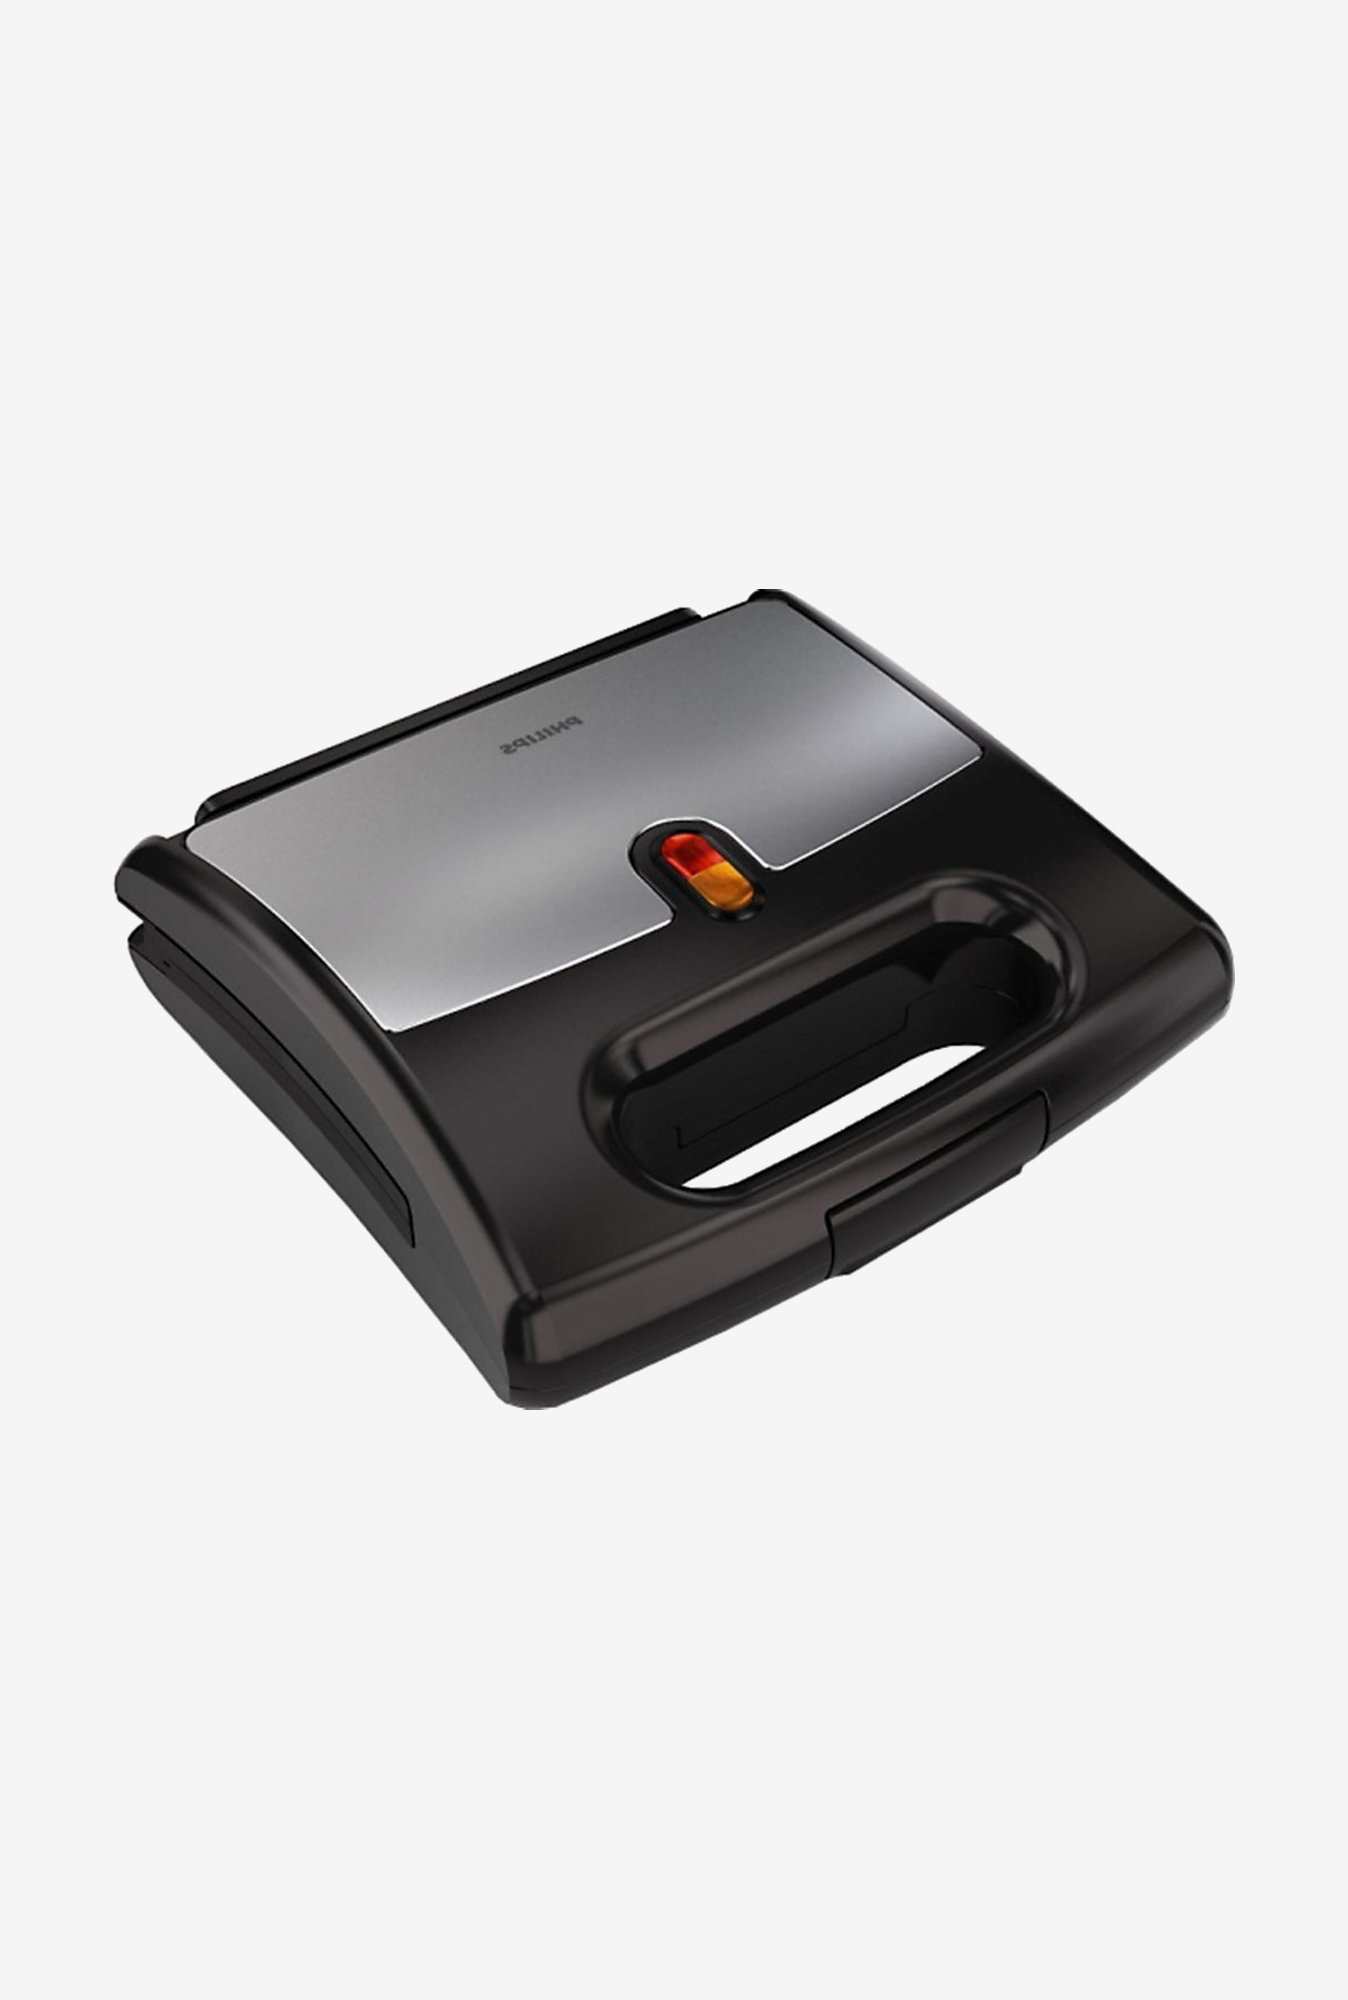 Philips HD2389/00 Pannini Grill Sandwich Maker (Black)